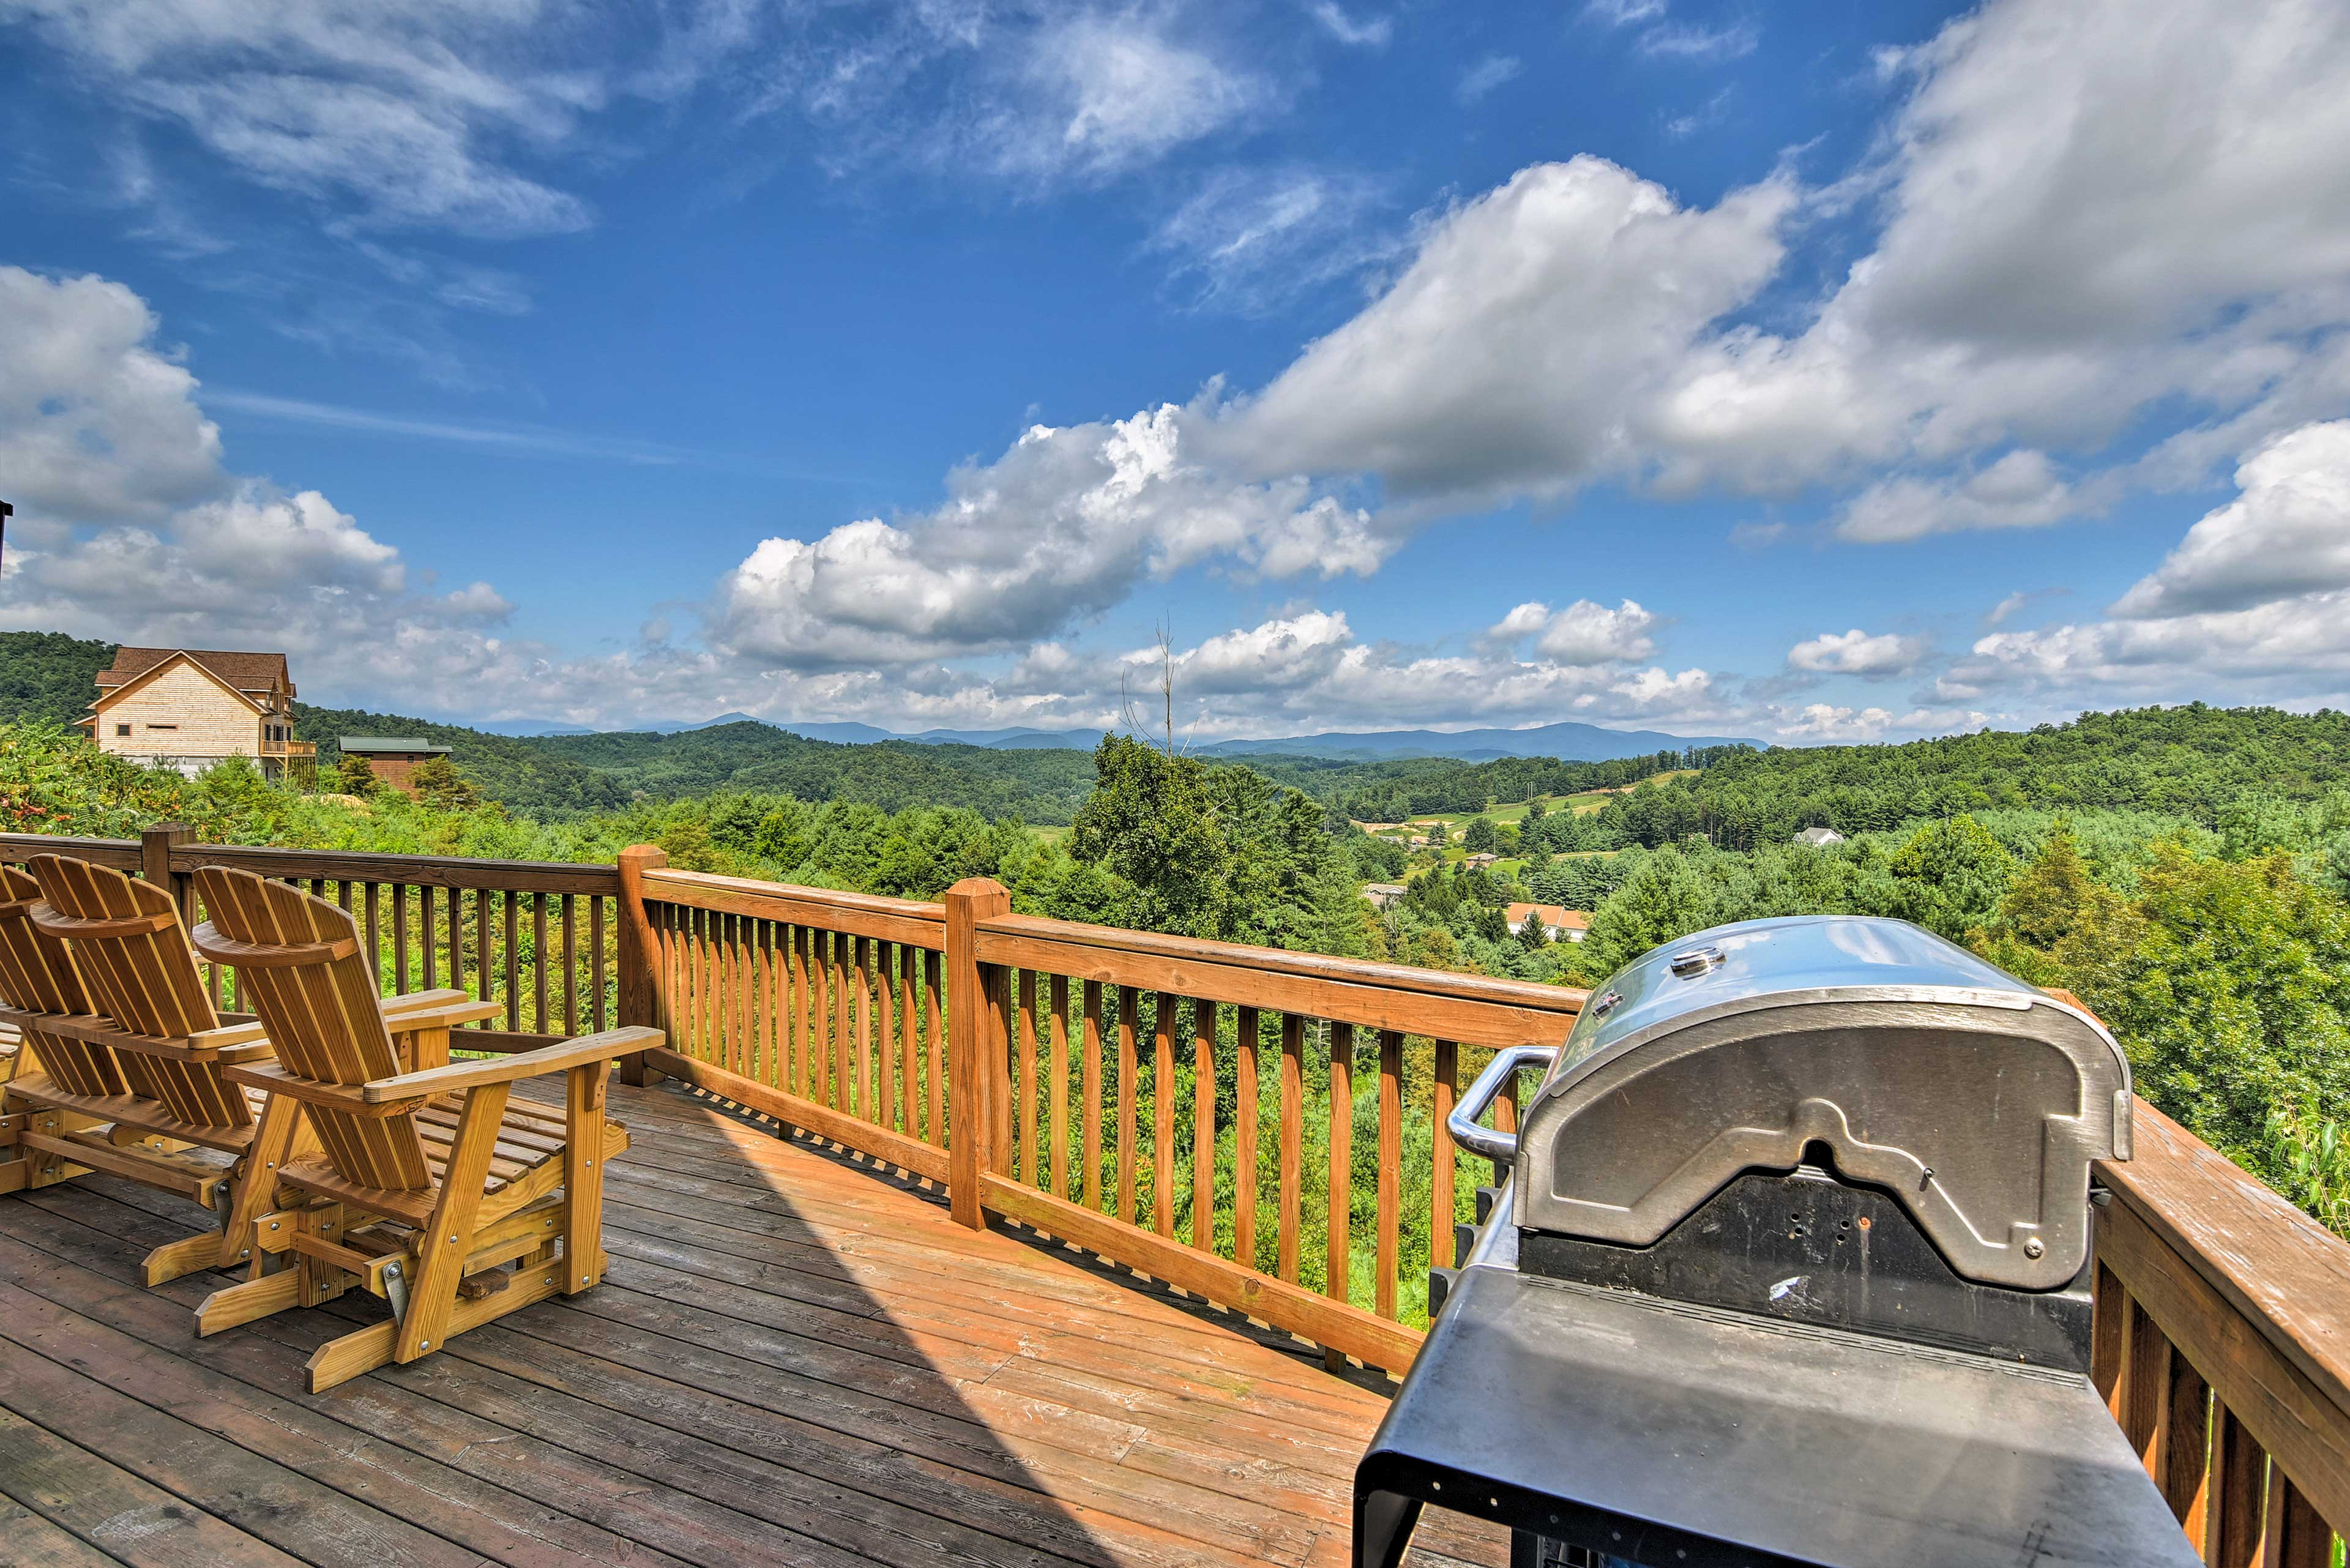 You'll have views of the Blue Ridge Mountains from the wraparound deck.